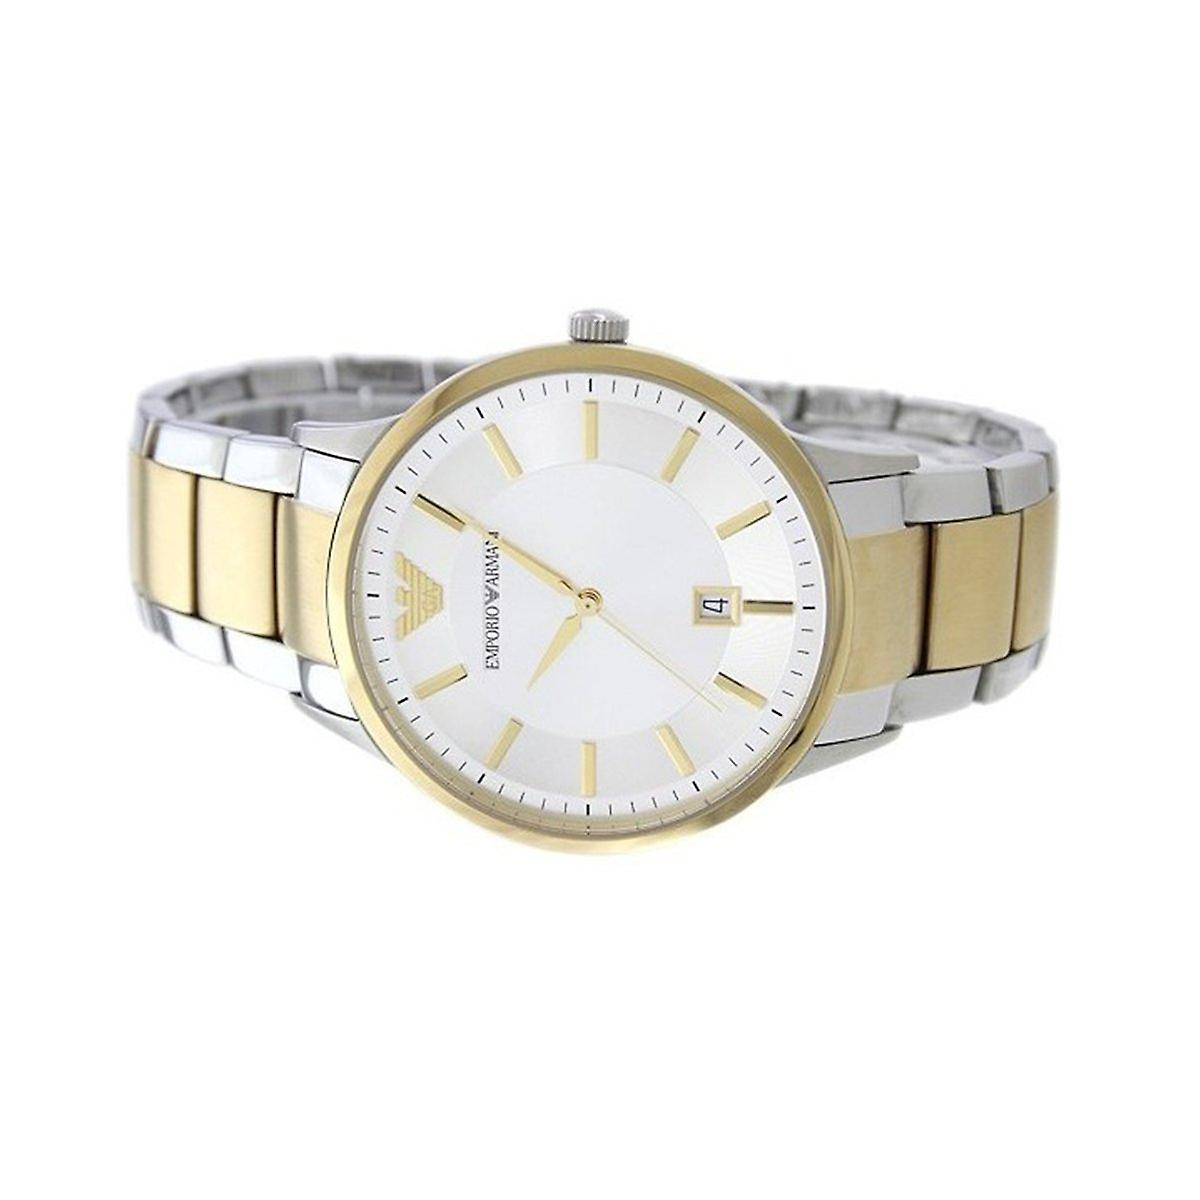 Emporio armani gents ar2449 watch two tone stainless steel bracelet with silver dial